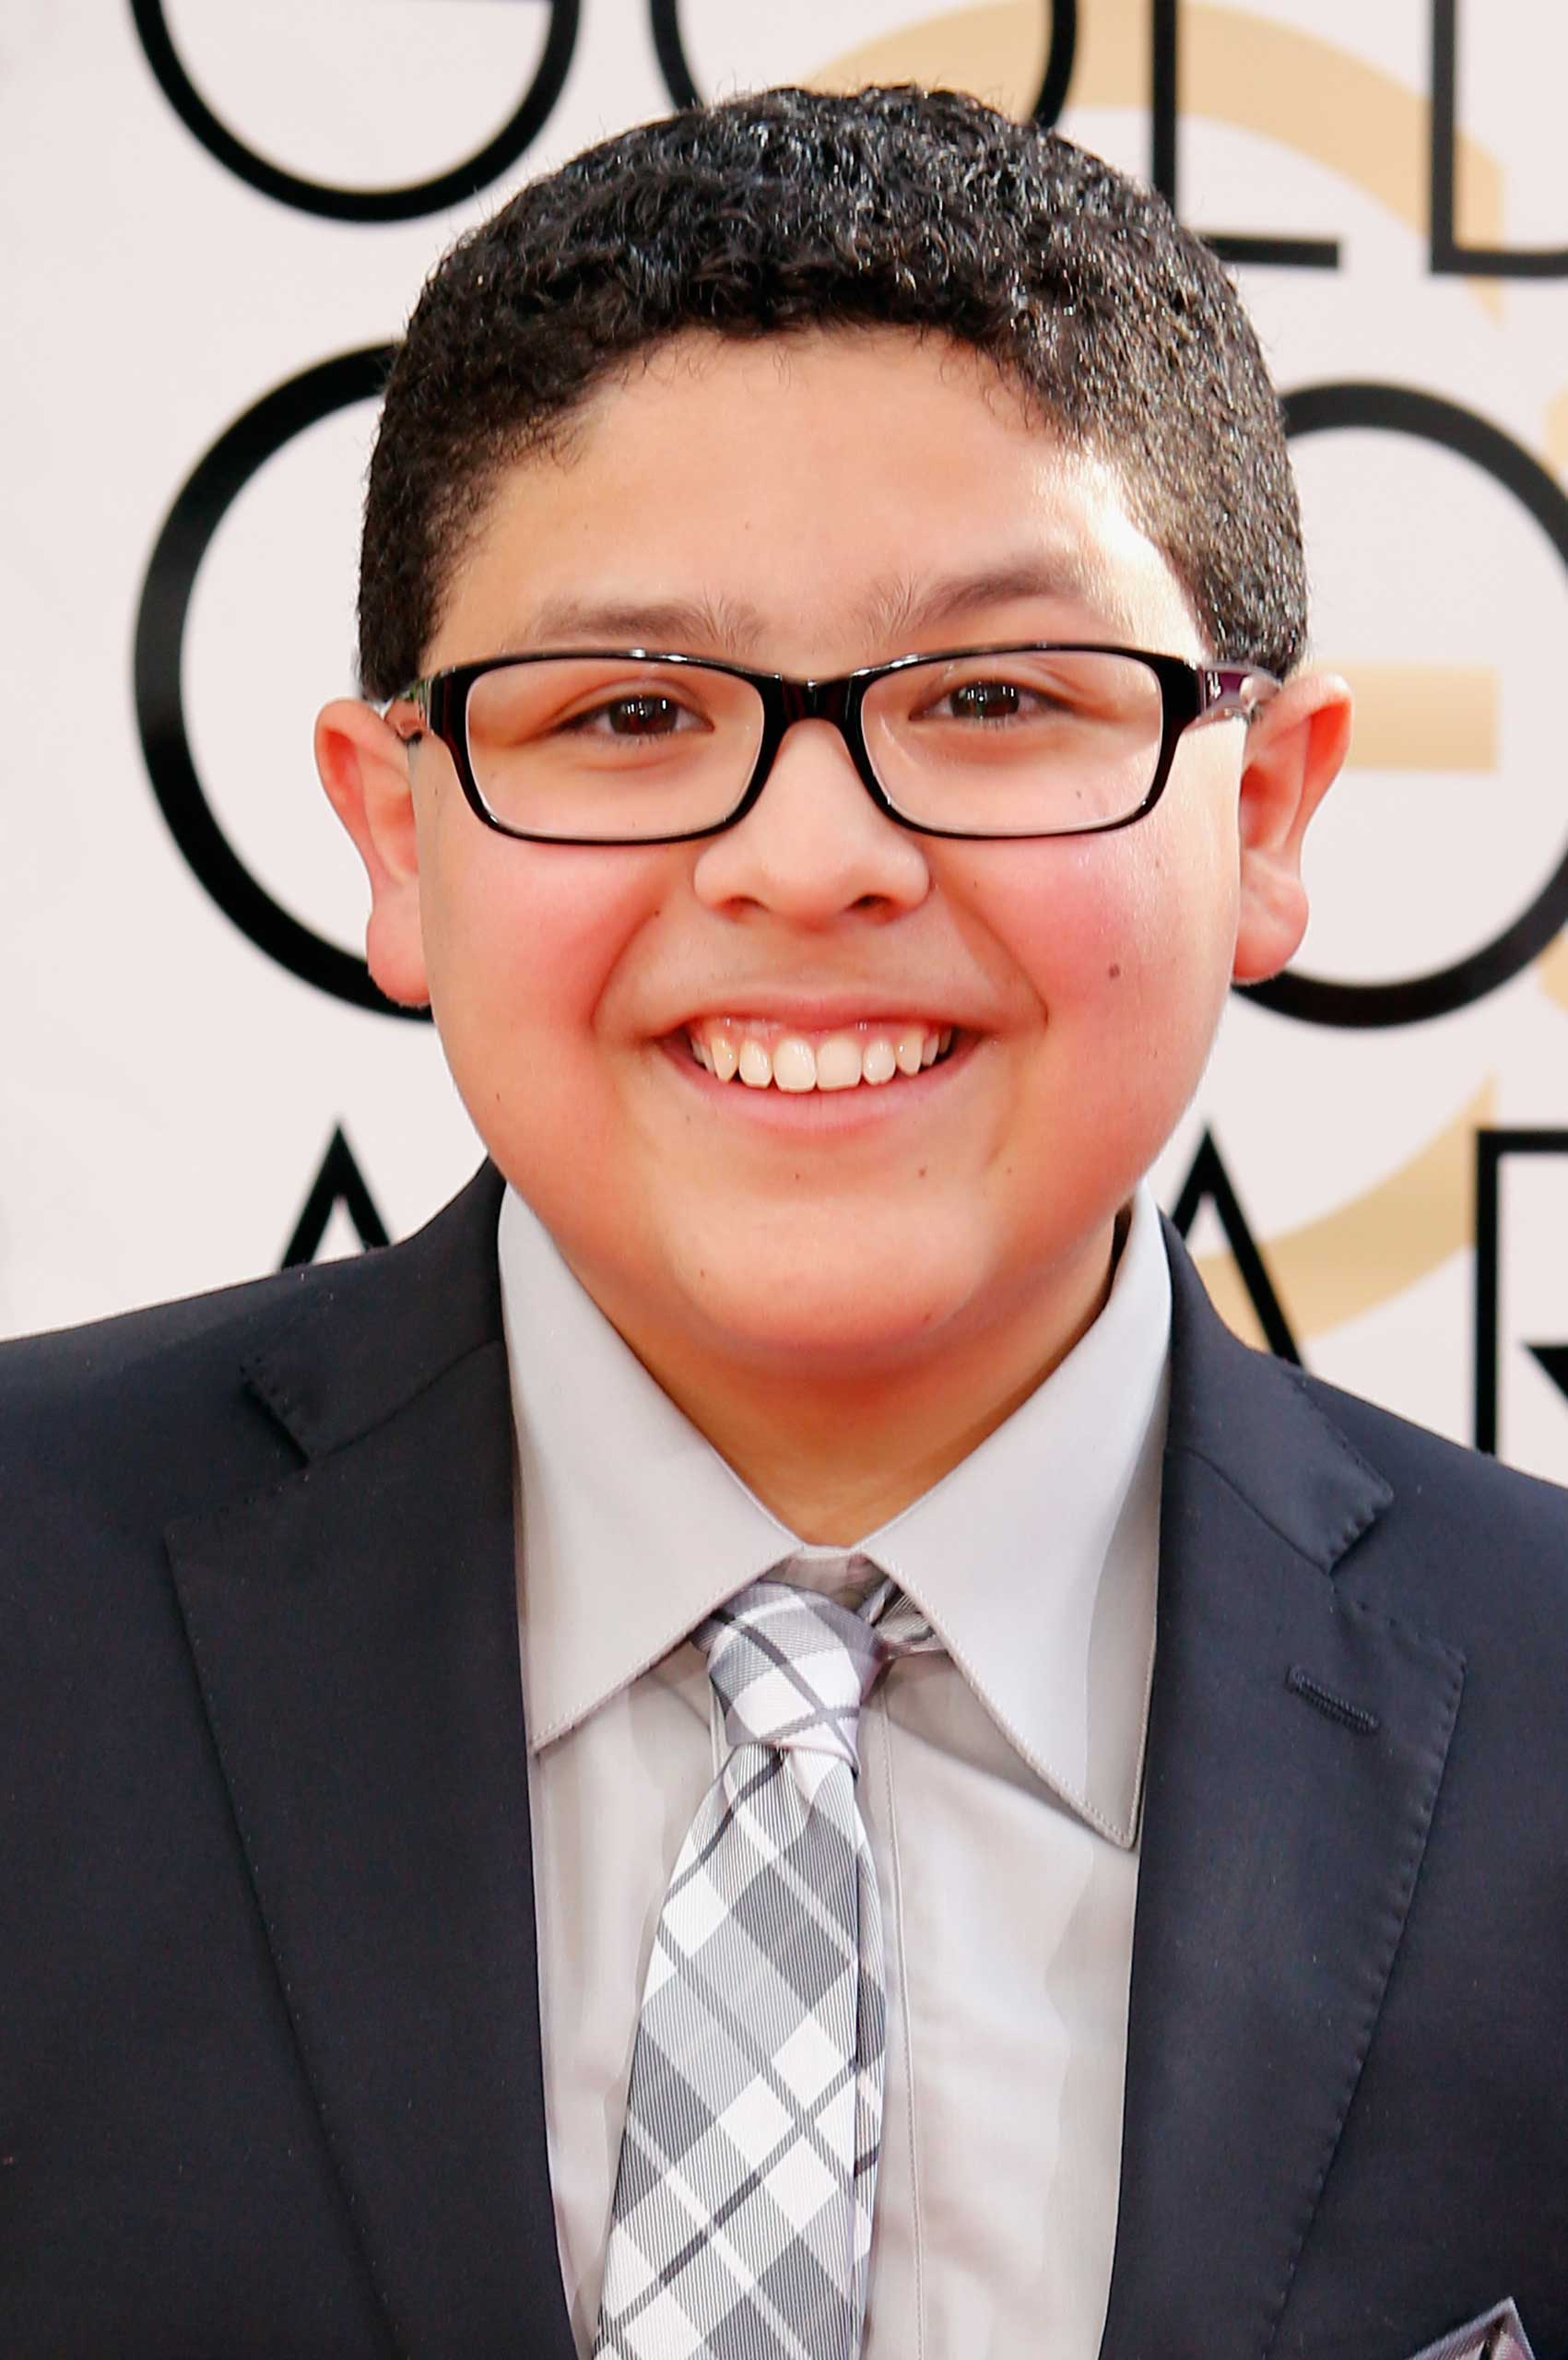 Actor Rico Rodriguez arrives to the 71st Annual Golden Globe Awards held at the Beverly Hilton Hotel on January 12, 2014 -- (Photo by Trae Patton/NBC/NBC via Getty Images)